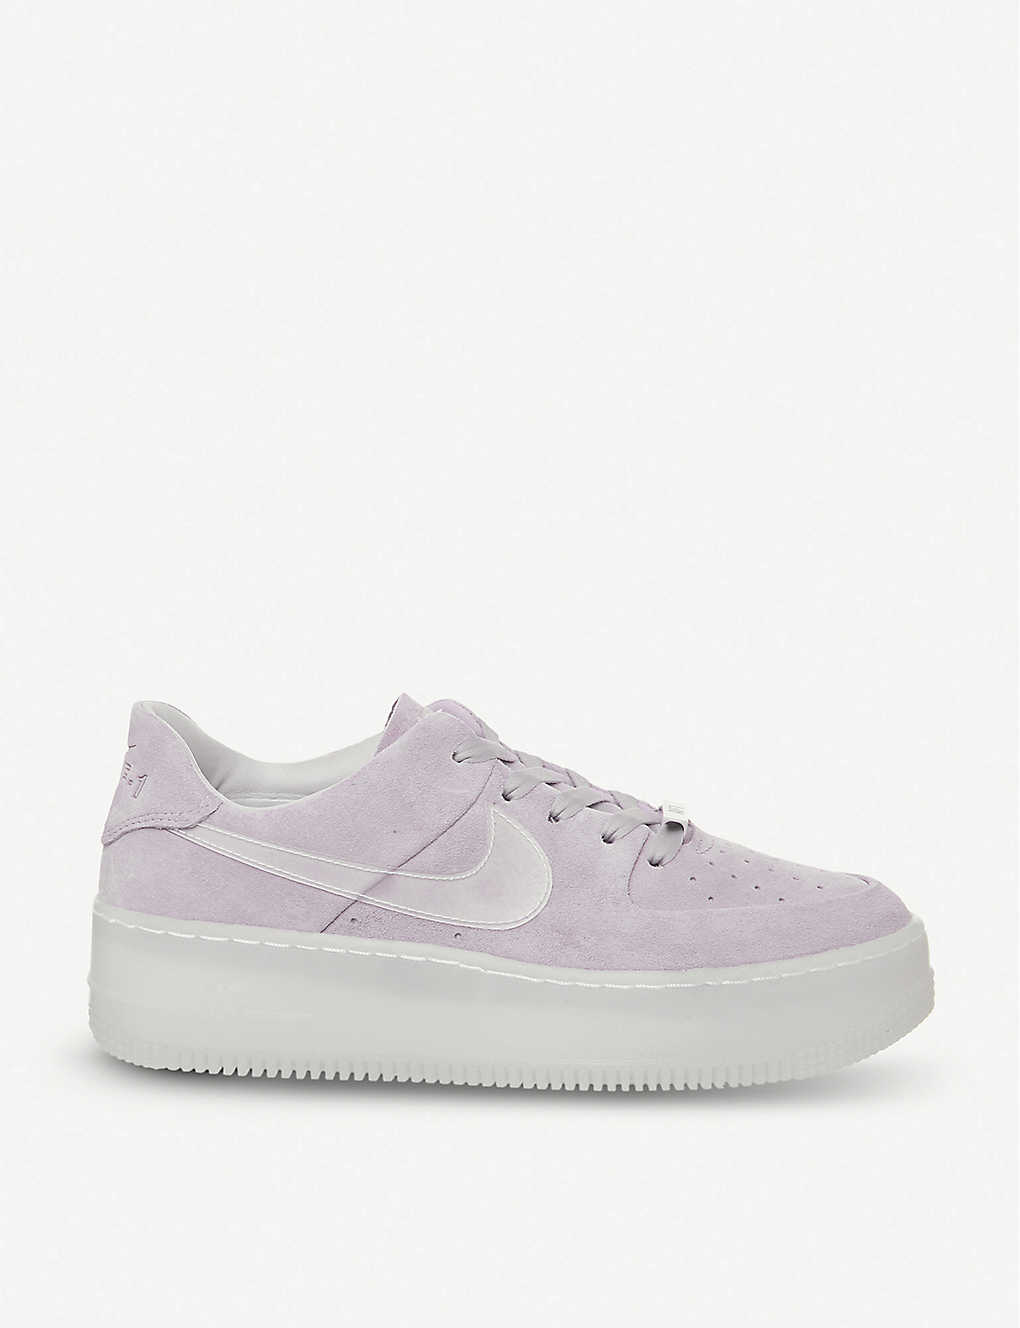 Air Force 1 Sage Suede Trainers